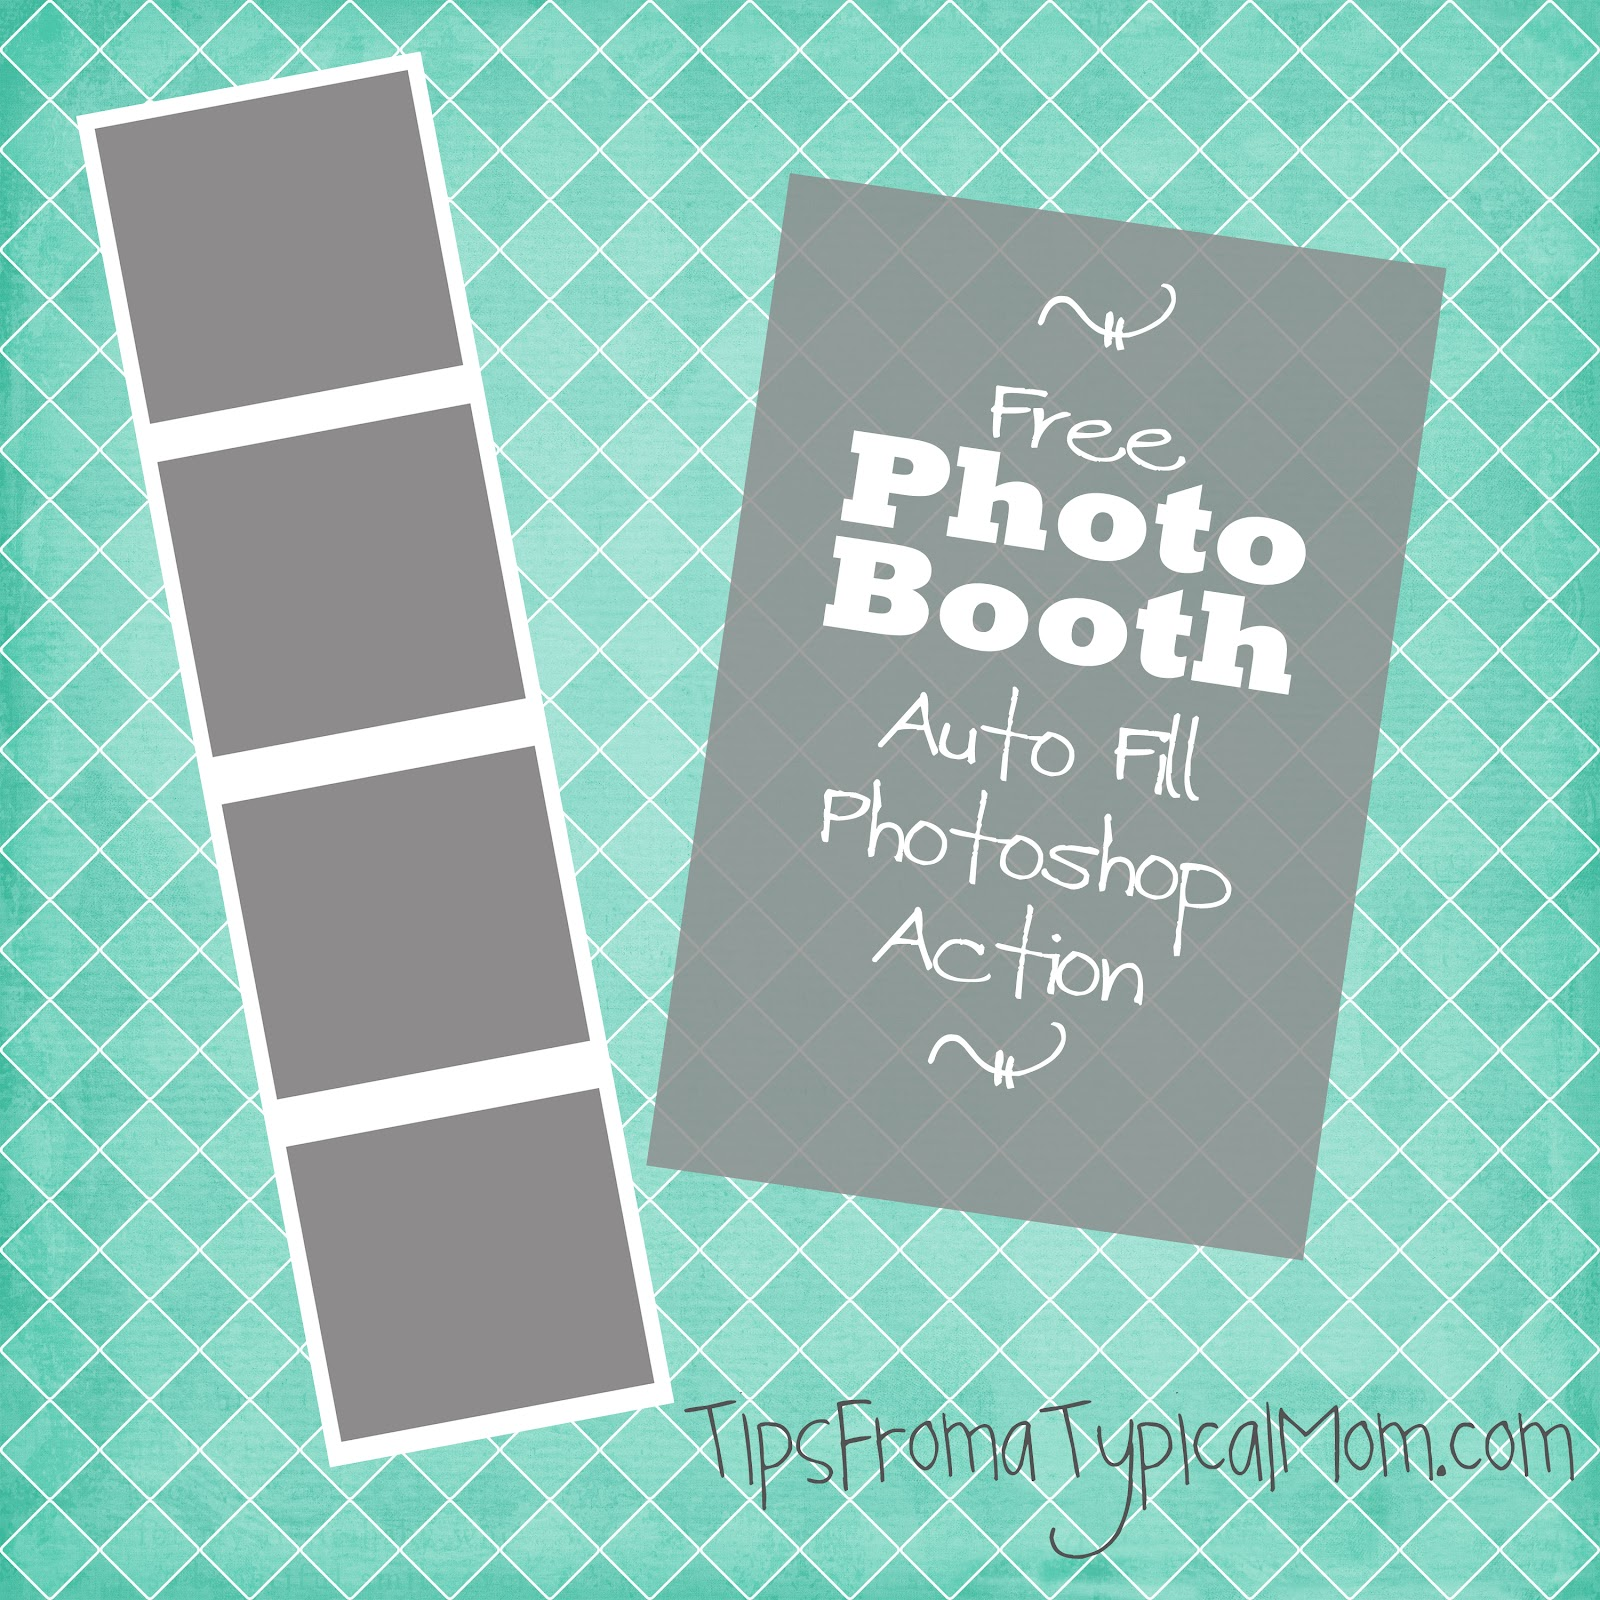 Free Photo Booth Frame Template Auto Fill Photoshop Action Tips